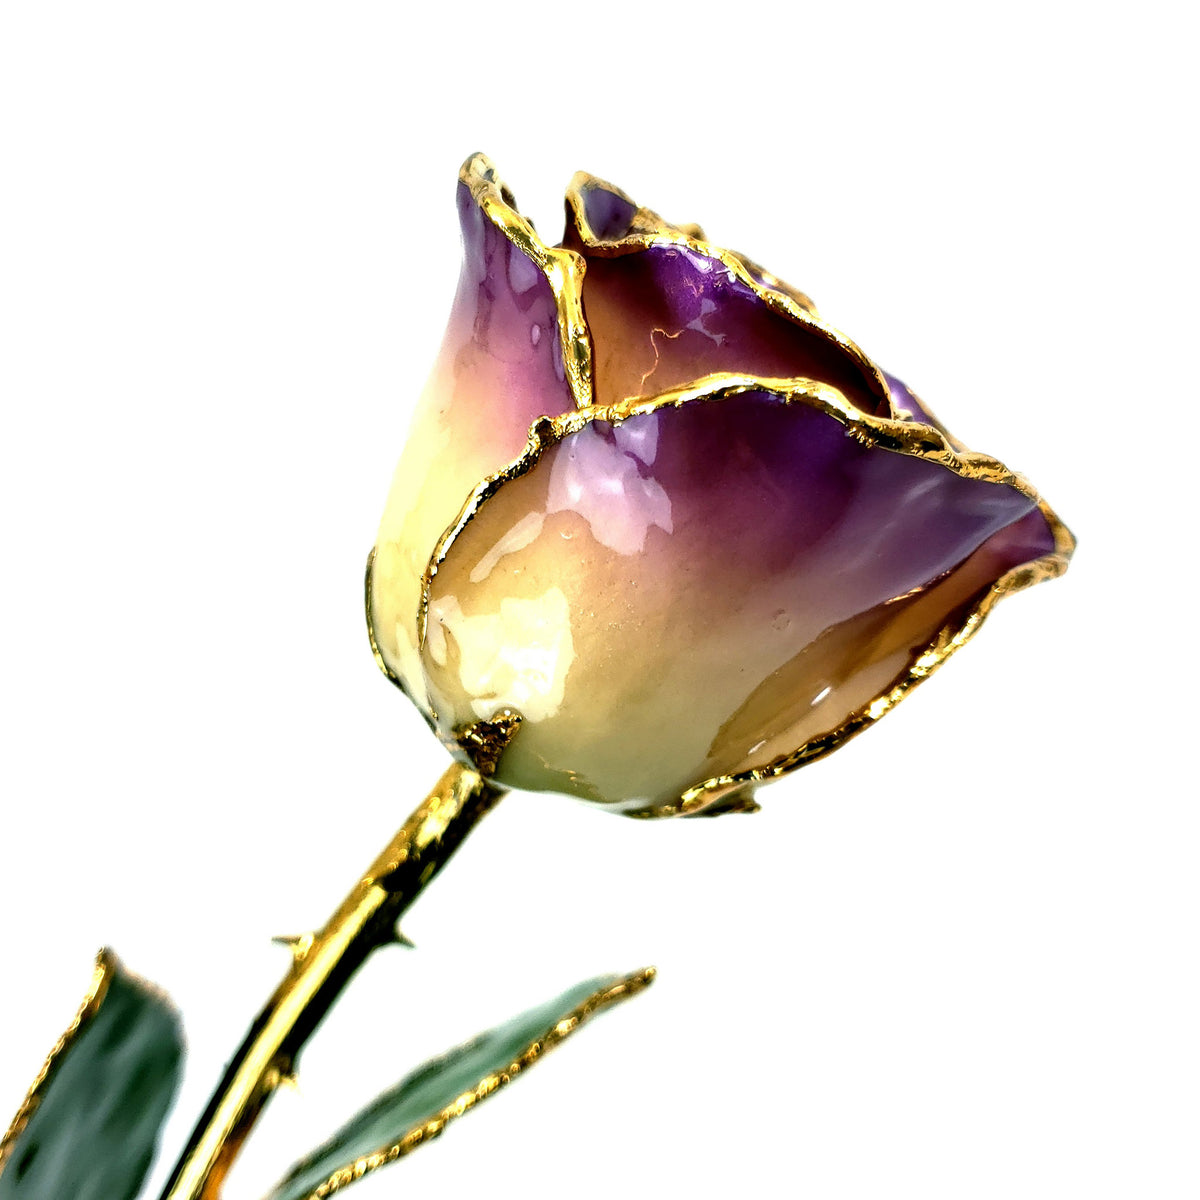 24K Gold Forever Rose - White to Purple